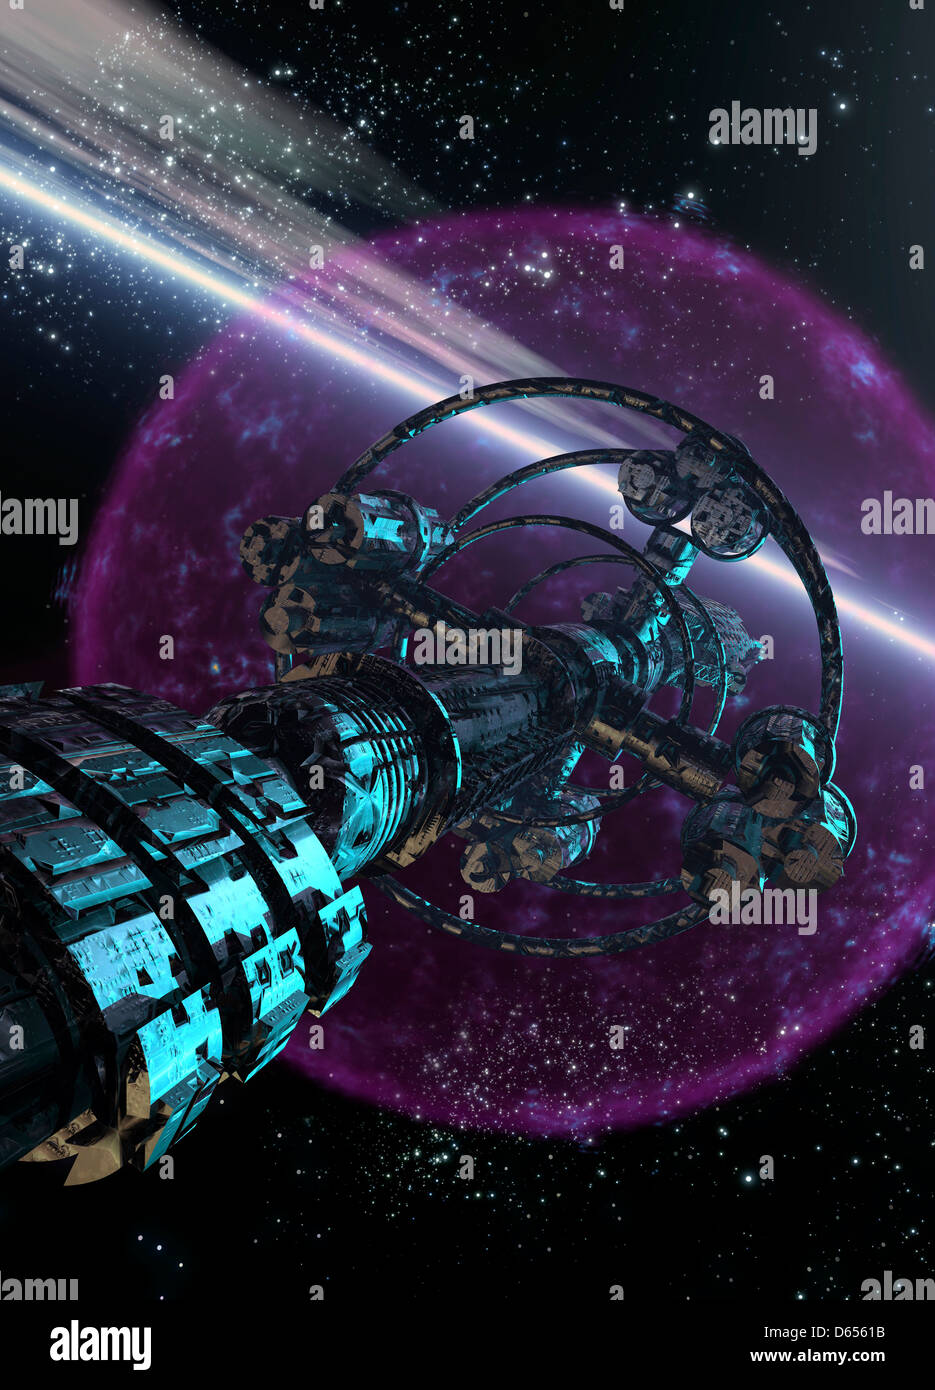 Alien Spaceship Artwork Stock Photo Alamy